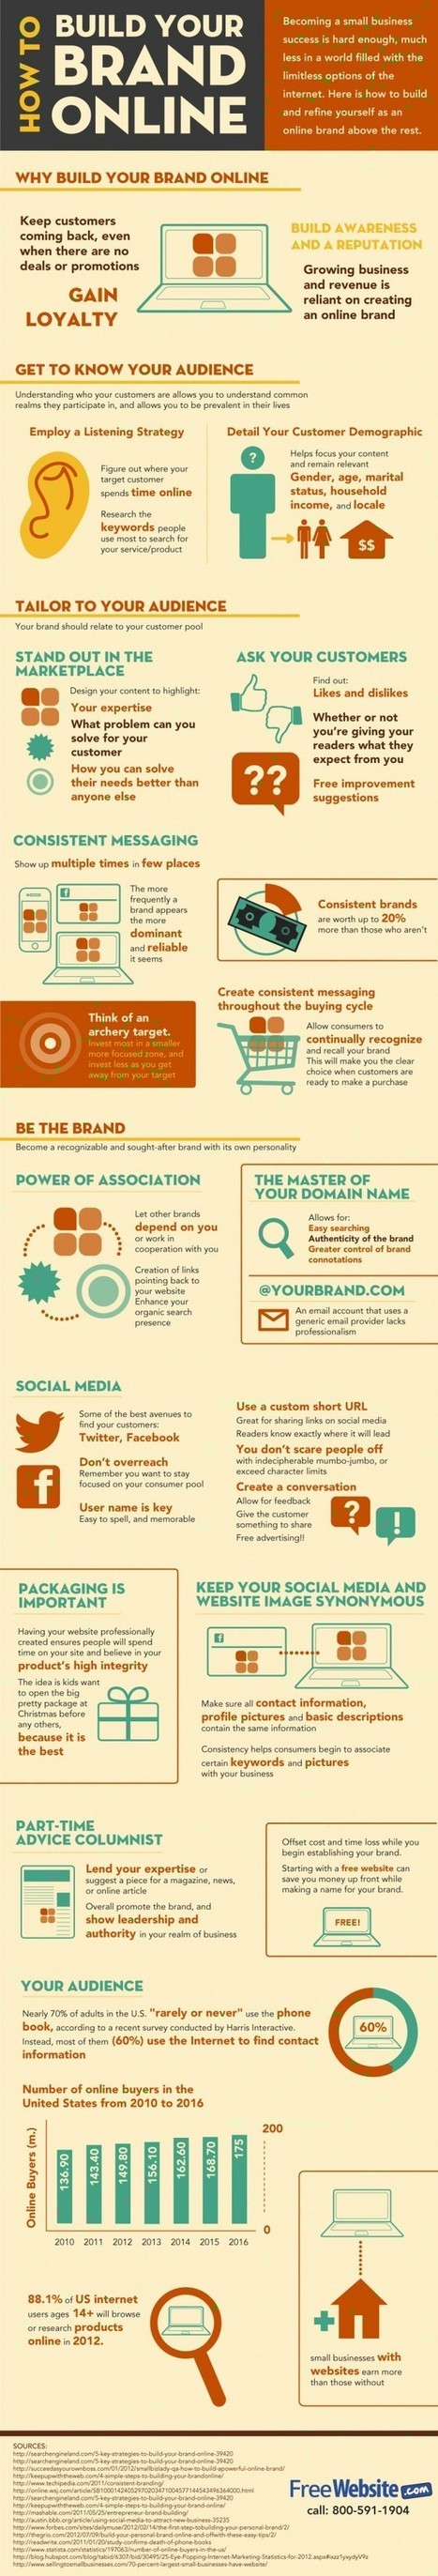 Why You Need to Build Your Brand Online [infographic] | Best Marketing Apps | Scoop.it